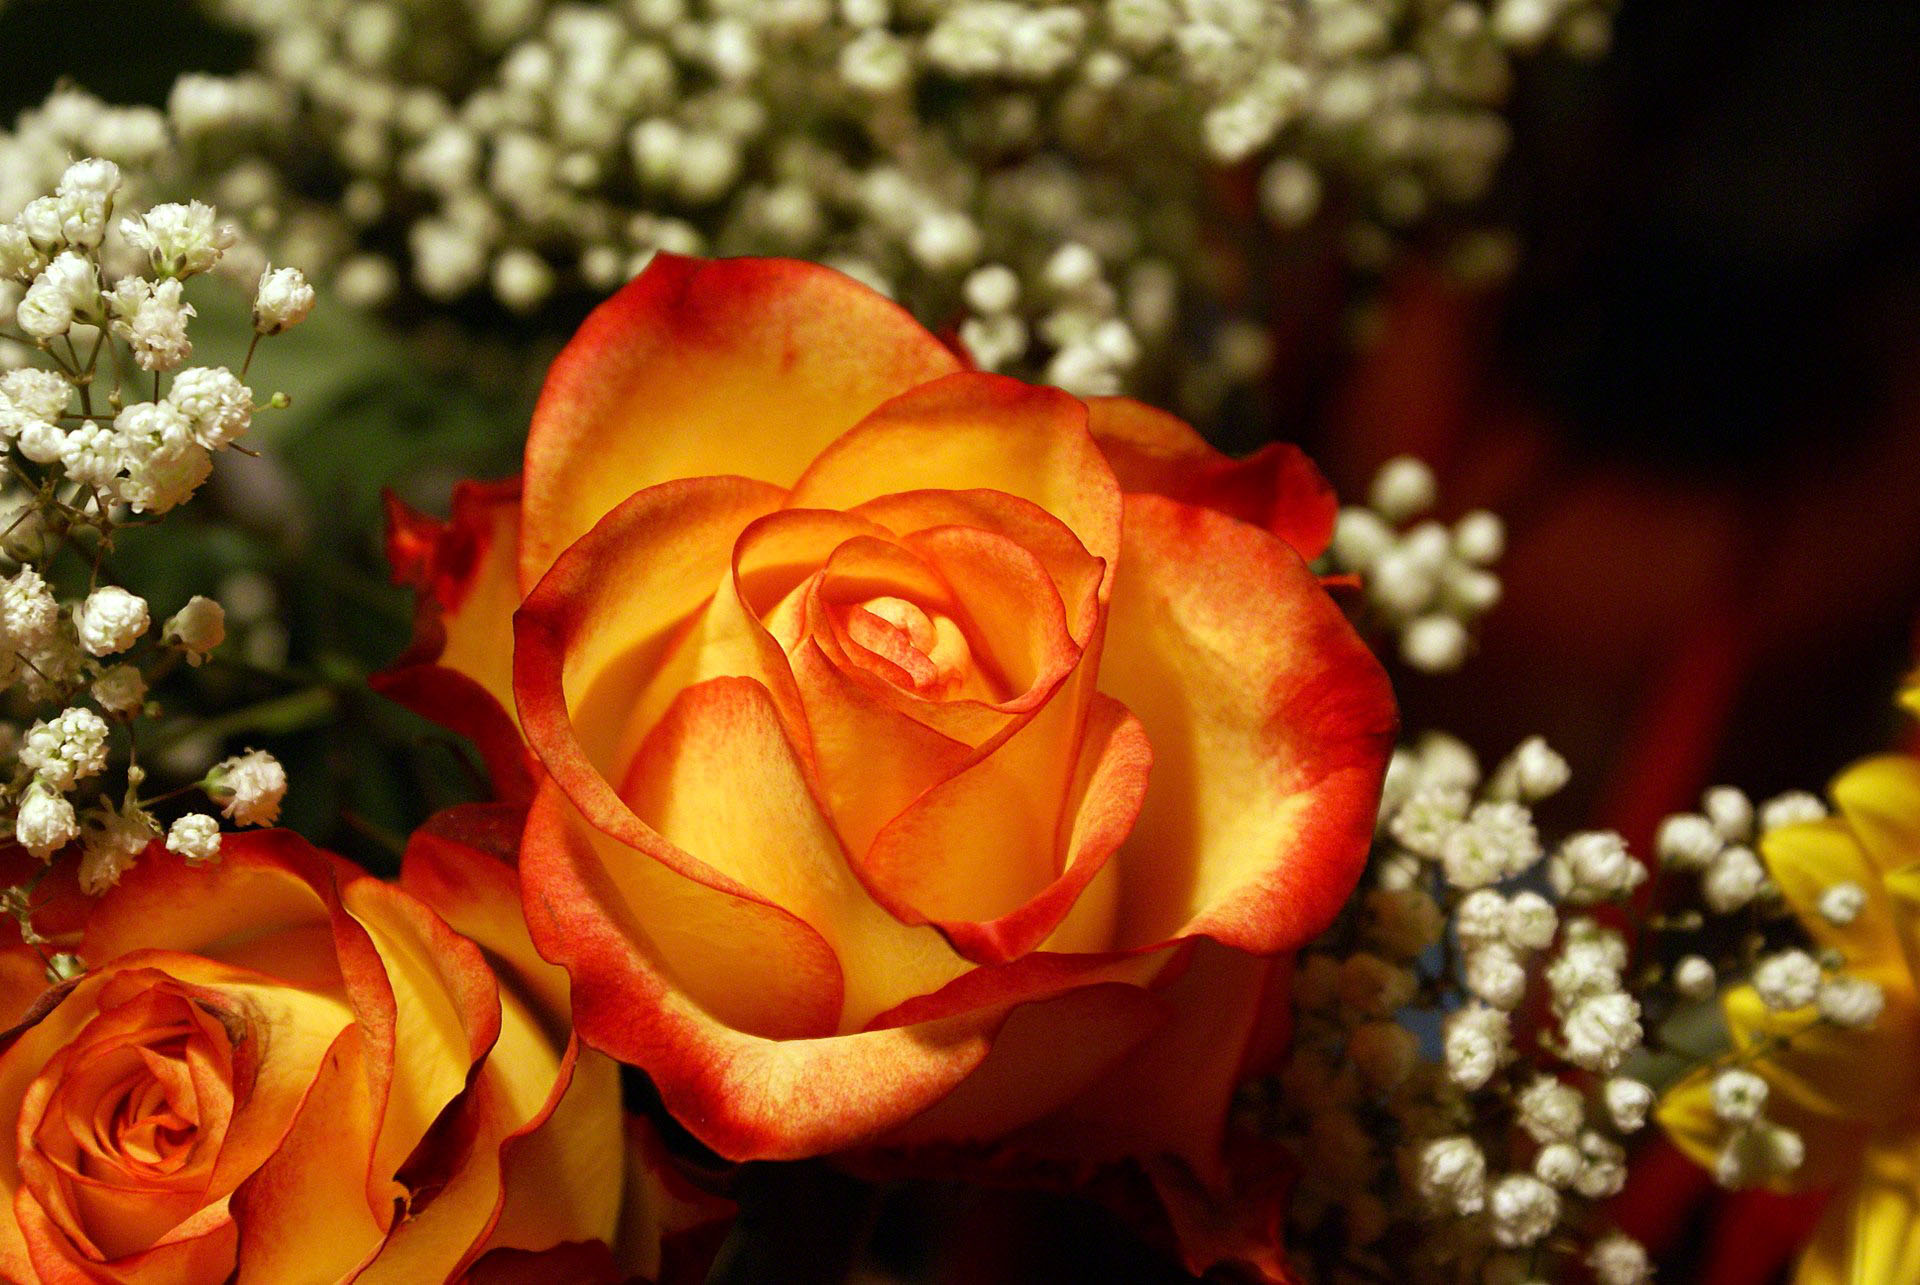 Pale peach rose and its symbolic meaning modesty images frompo